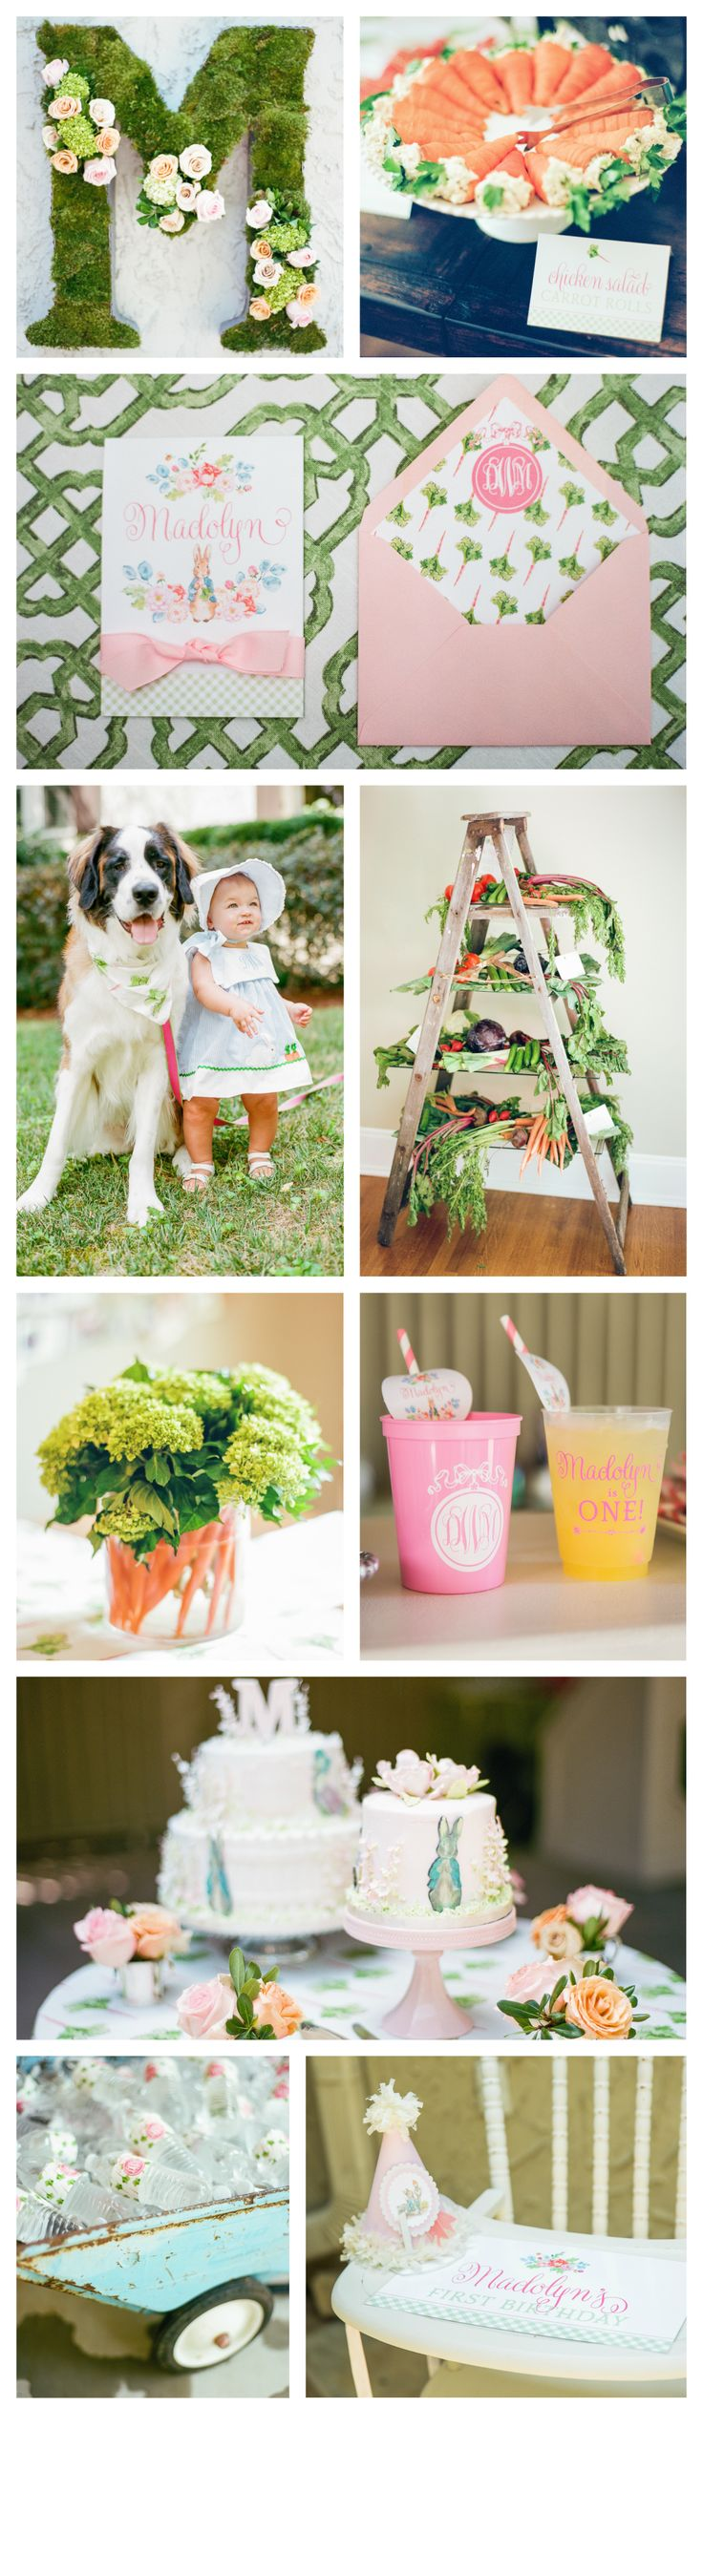 Madolyn's Peter Rabbit Themed First Birthday by Nico and Lala